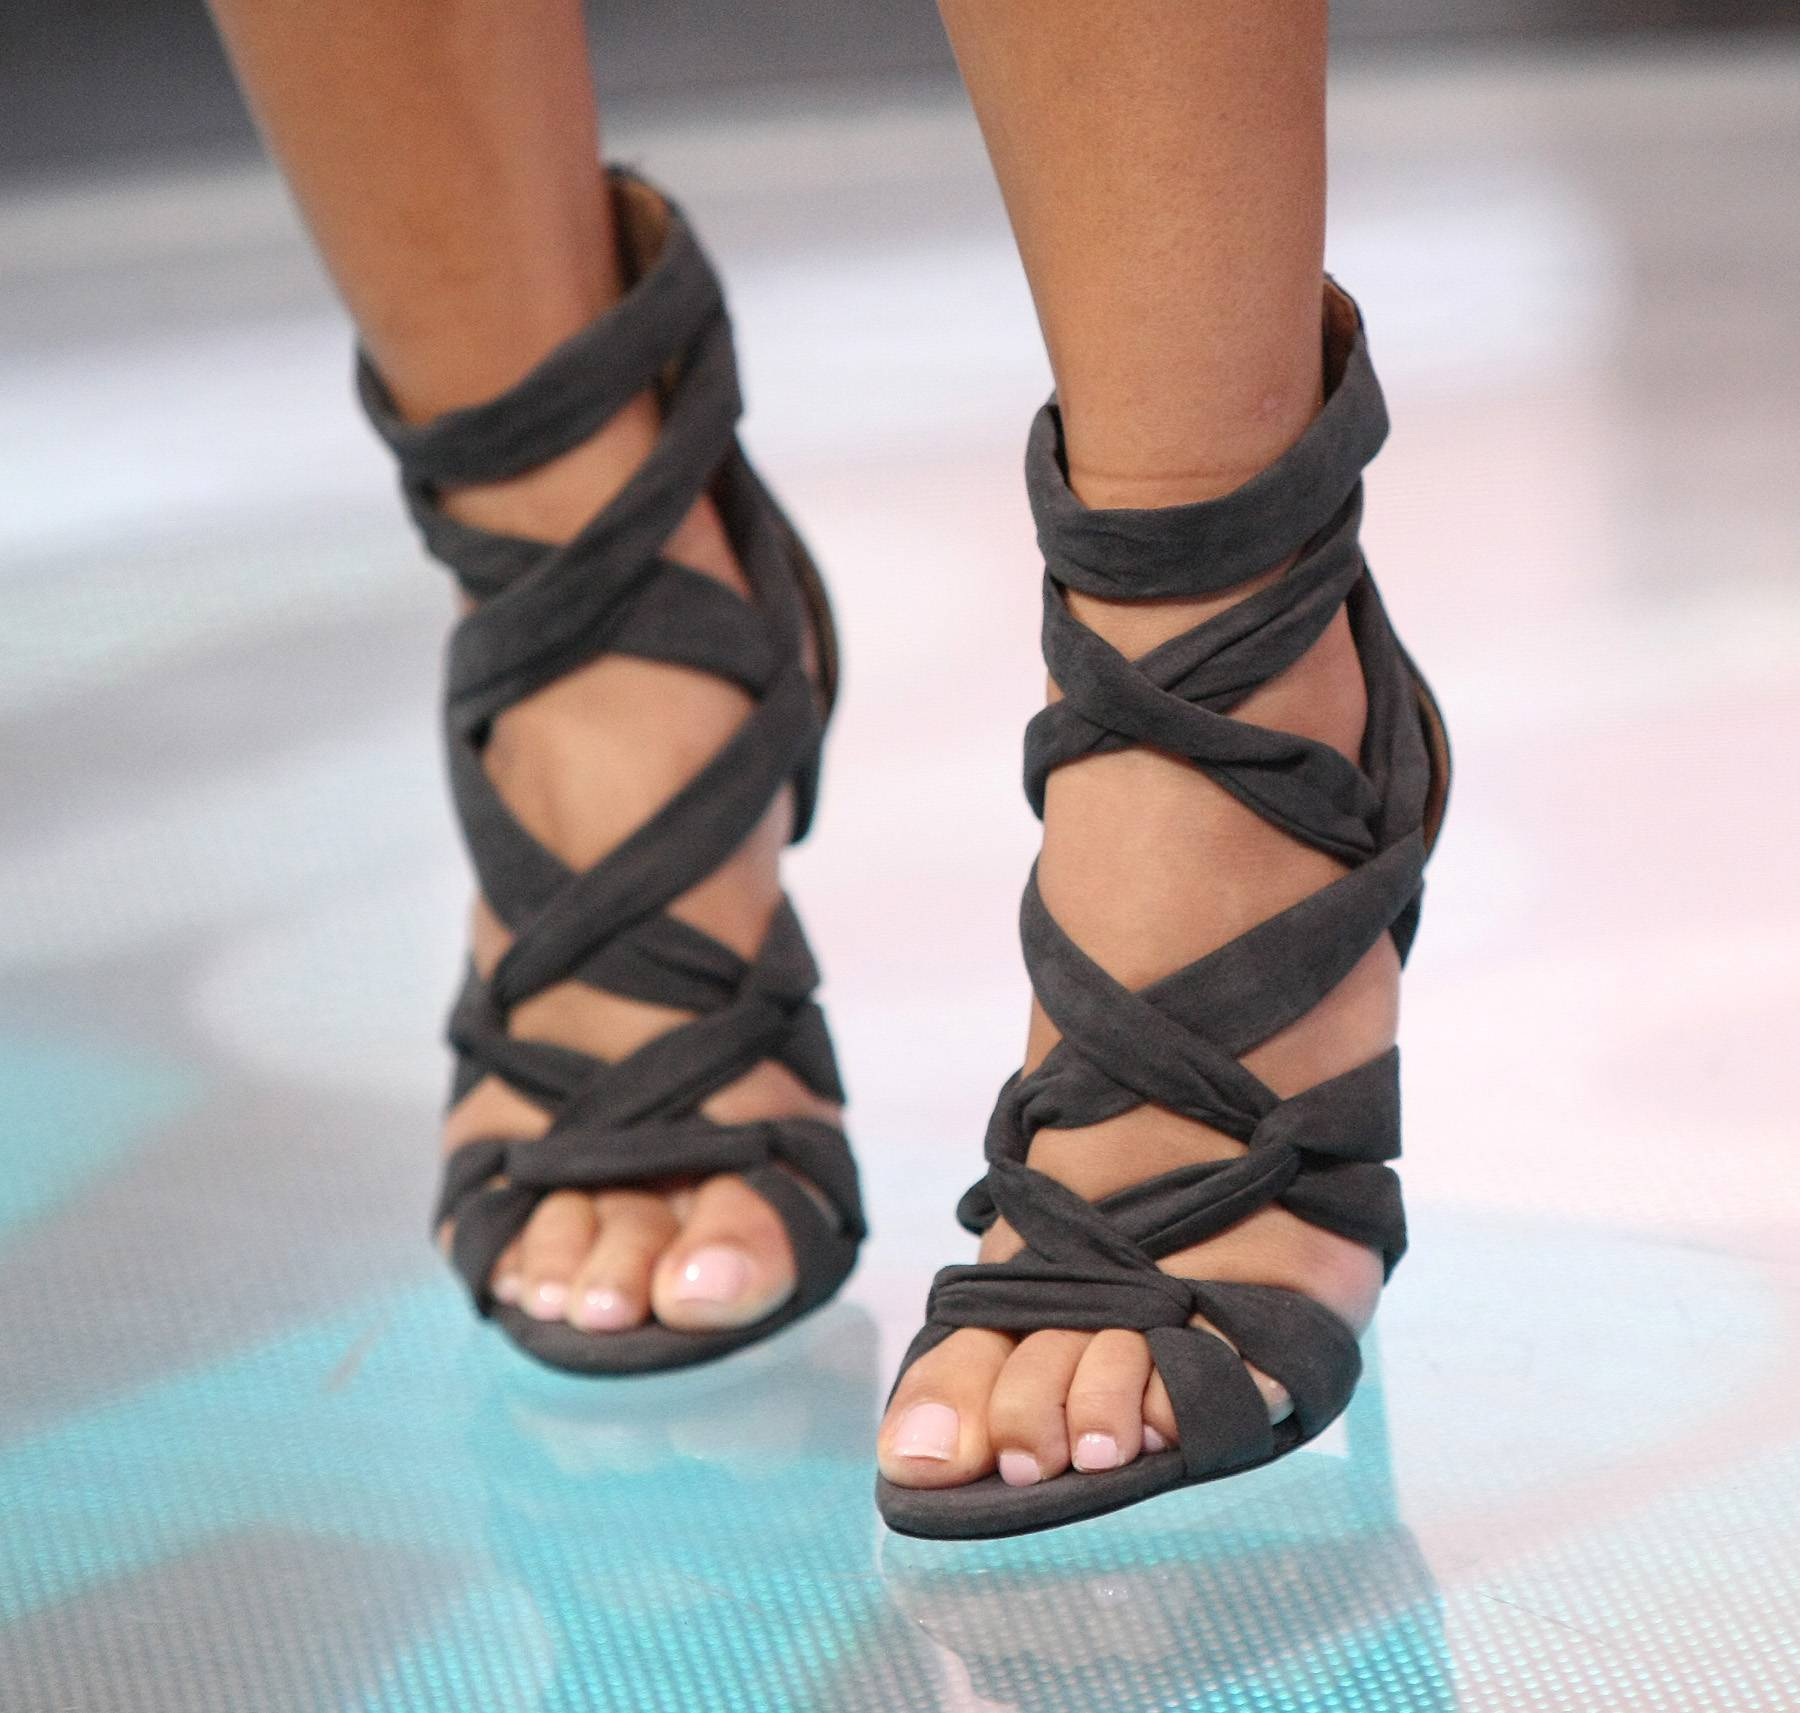 Pretty Toes - (Photo: Bennett Raglin/BET/Getty Images for BET)